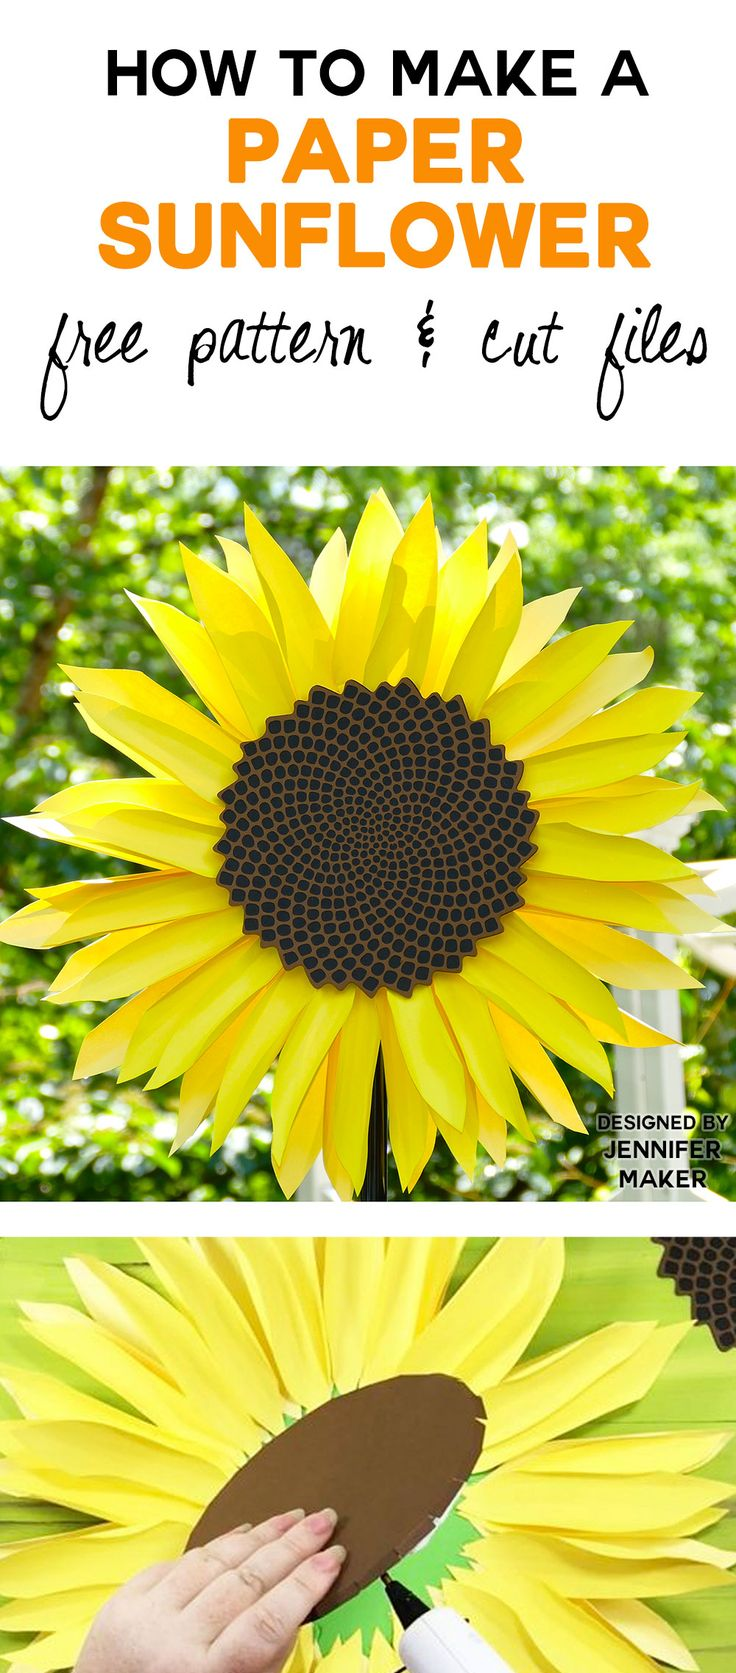 Wow! Make this paper sunflower with realistic petals and seed head. Free pattern and SVG files.